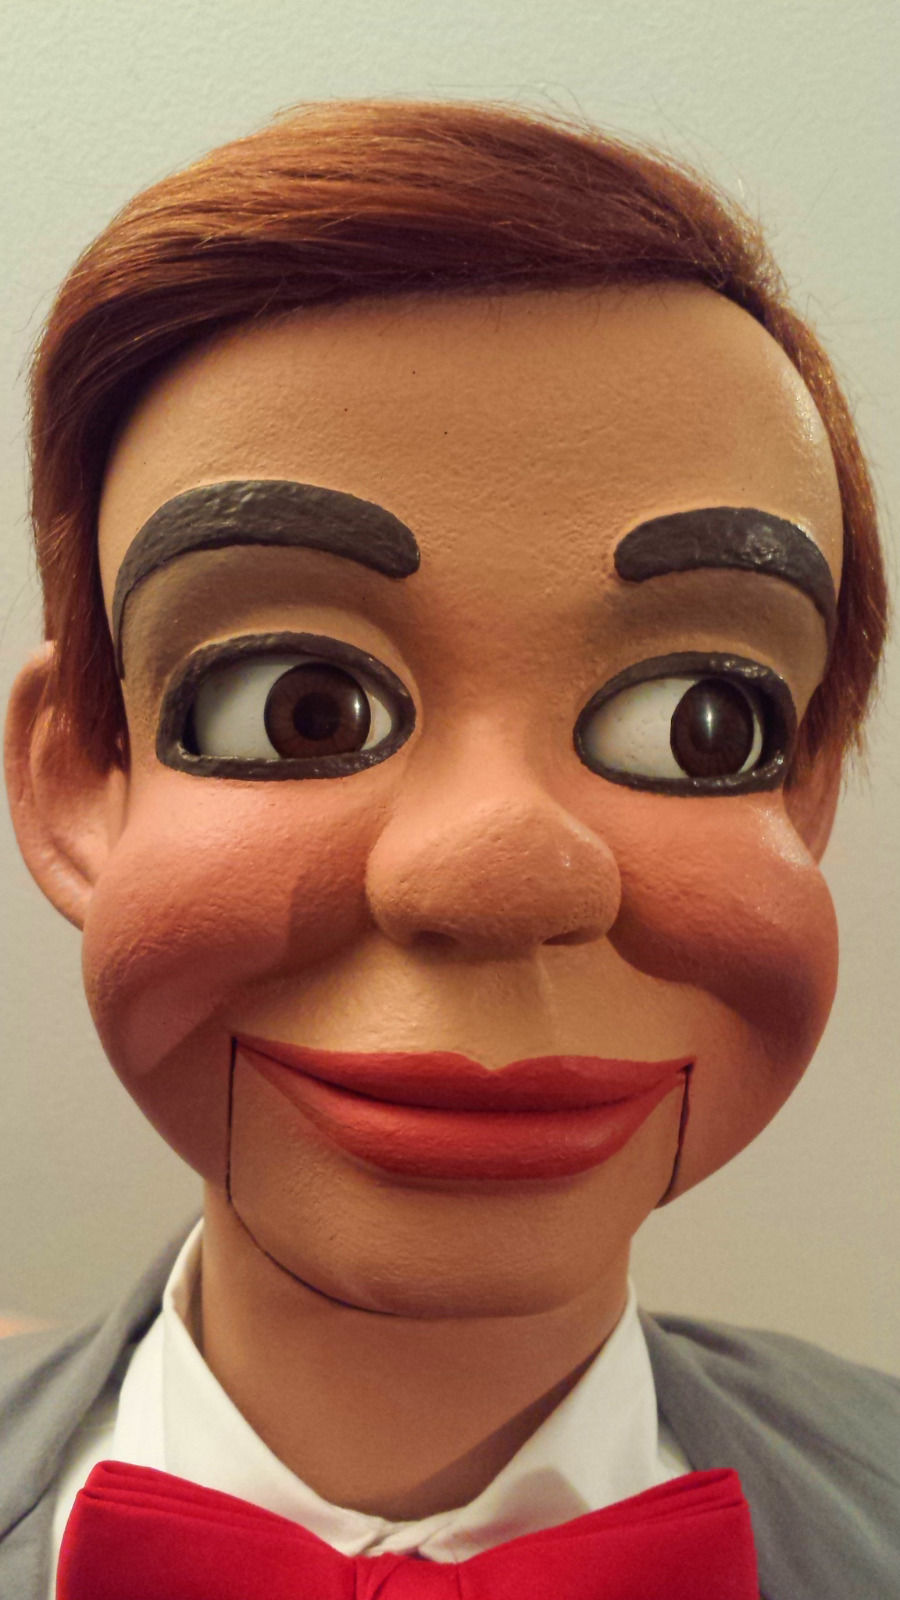 Amazon.com: ventriloquist dolls: Toys & Games